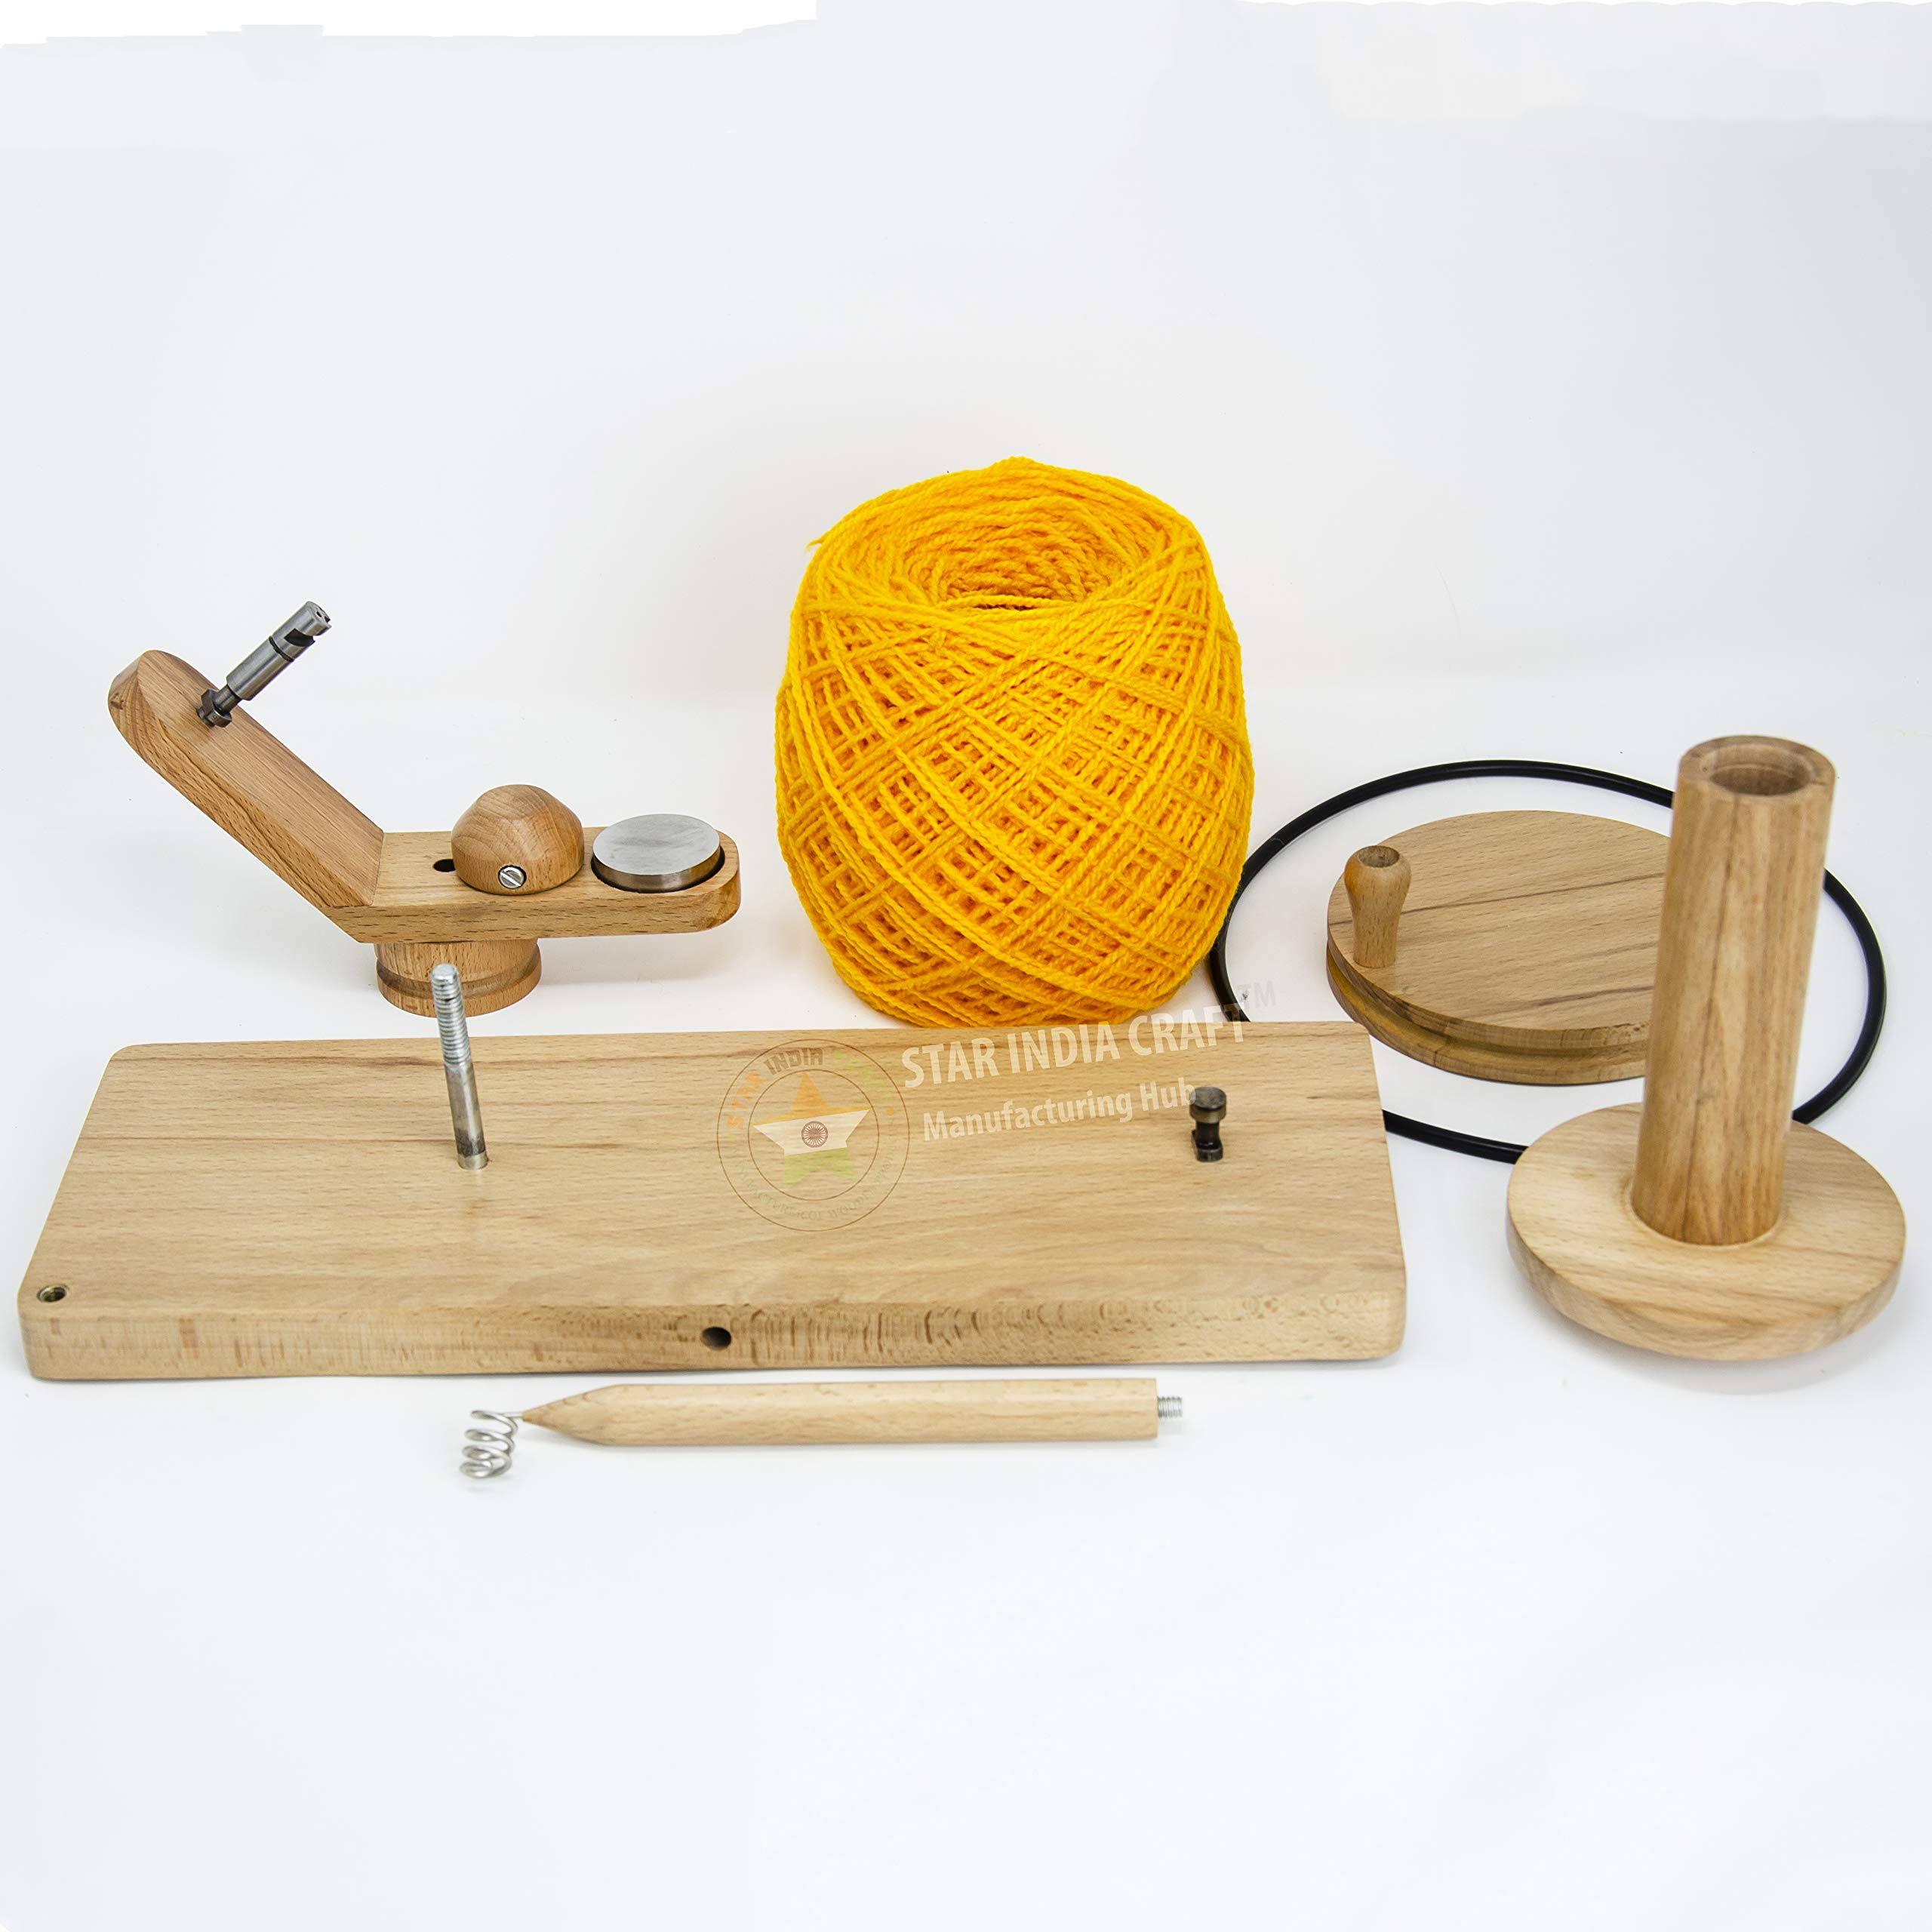 STAR INDIA CRAFT Handmade Center Pull Yarn Ball Winder - Natural Yarn Winder | Perfect DIY Knitter's Gifts for Knitting and Crocheting | Handcrafted Ball Winder (Yarn Winder, Standard) by STAR INDIA CRAFT (Image #8)